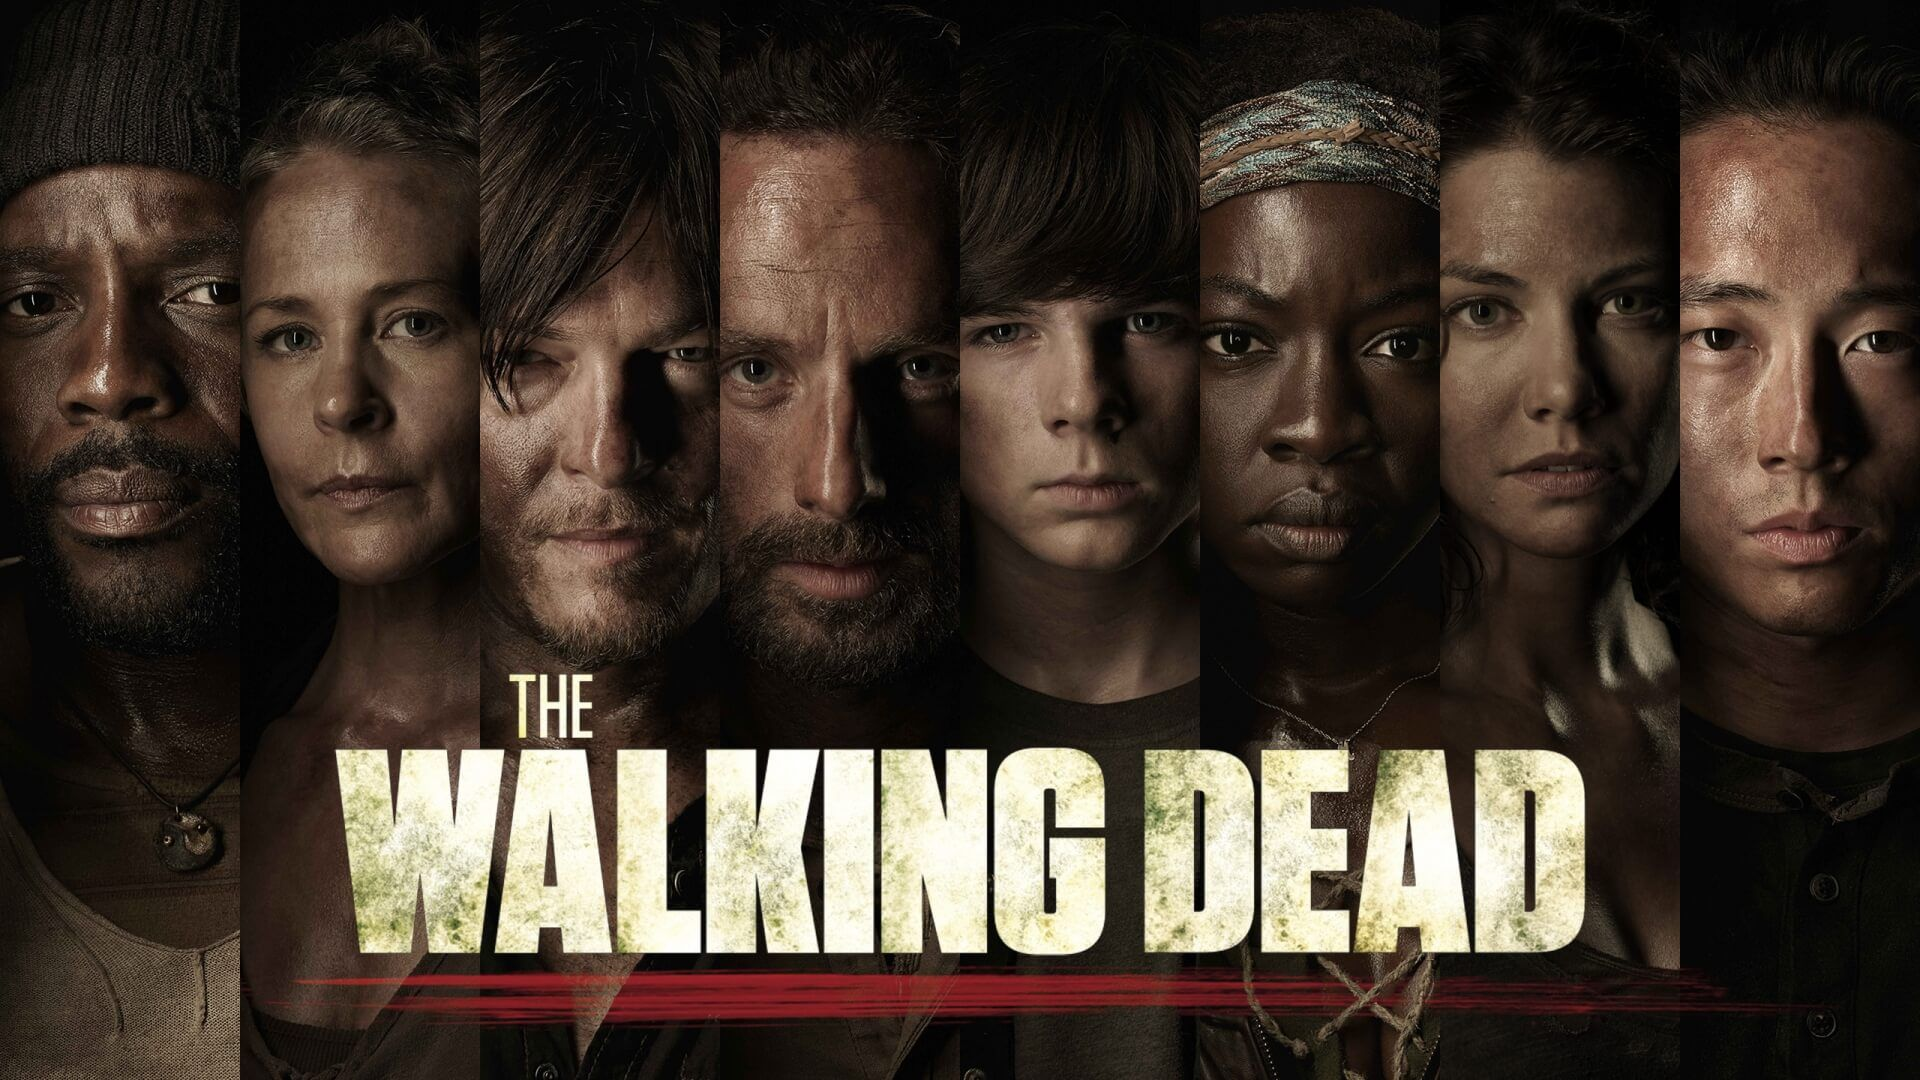 The Walking Dead 4k Wallpaper We Love The Walking Dead